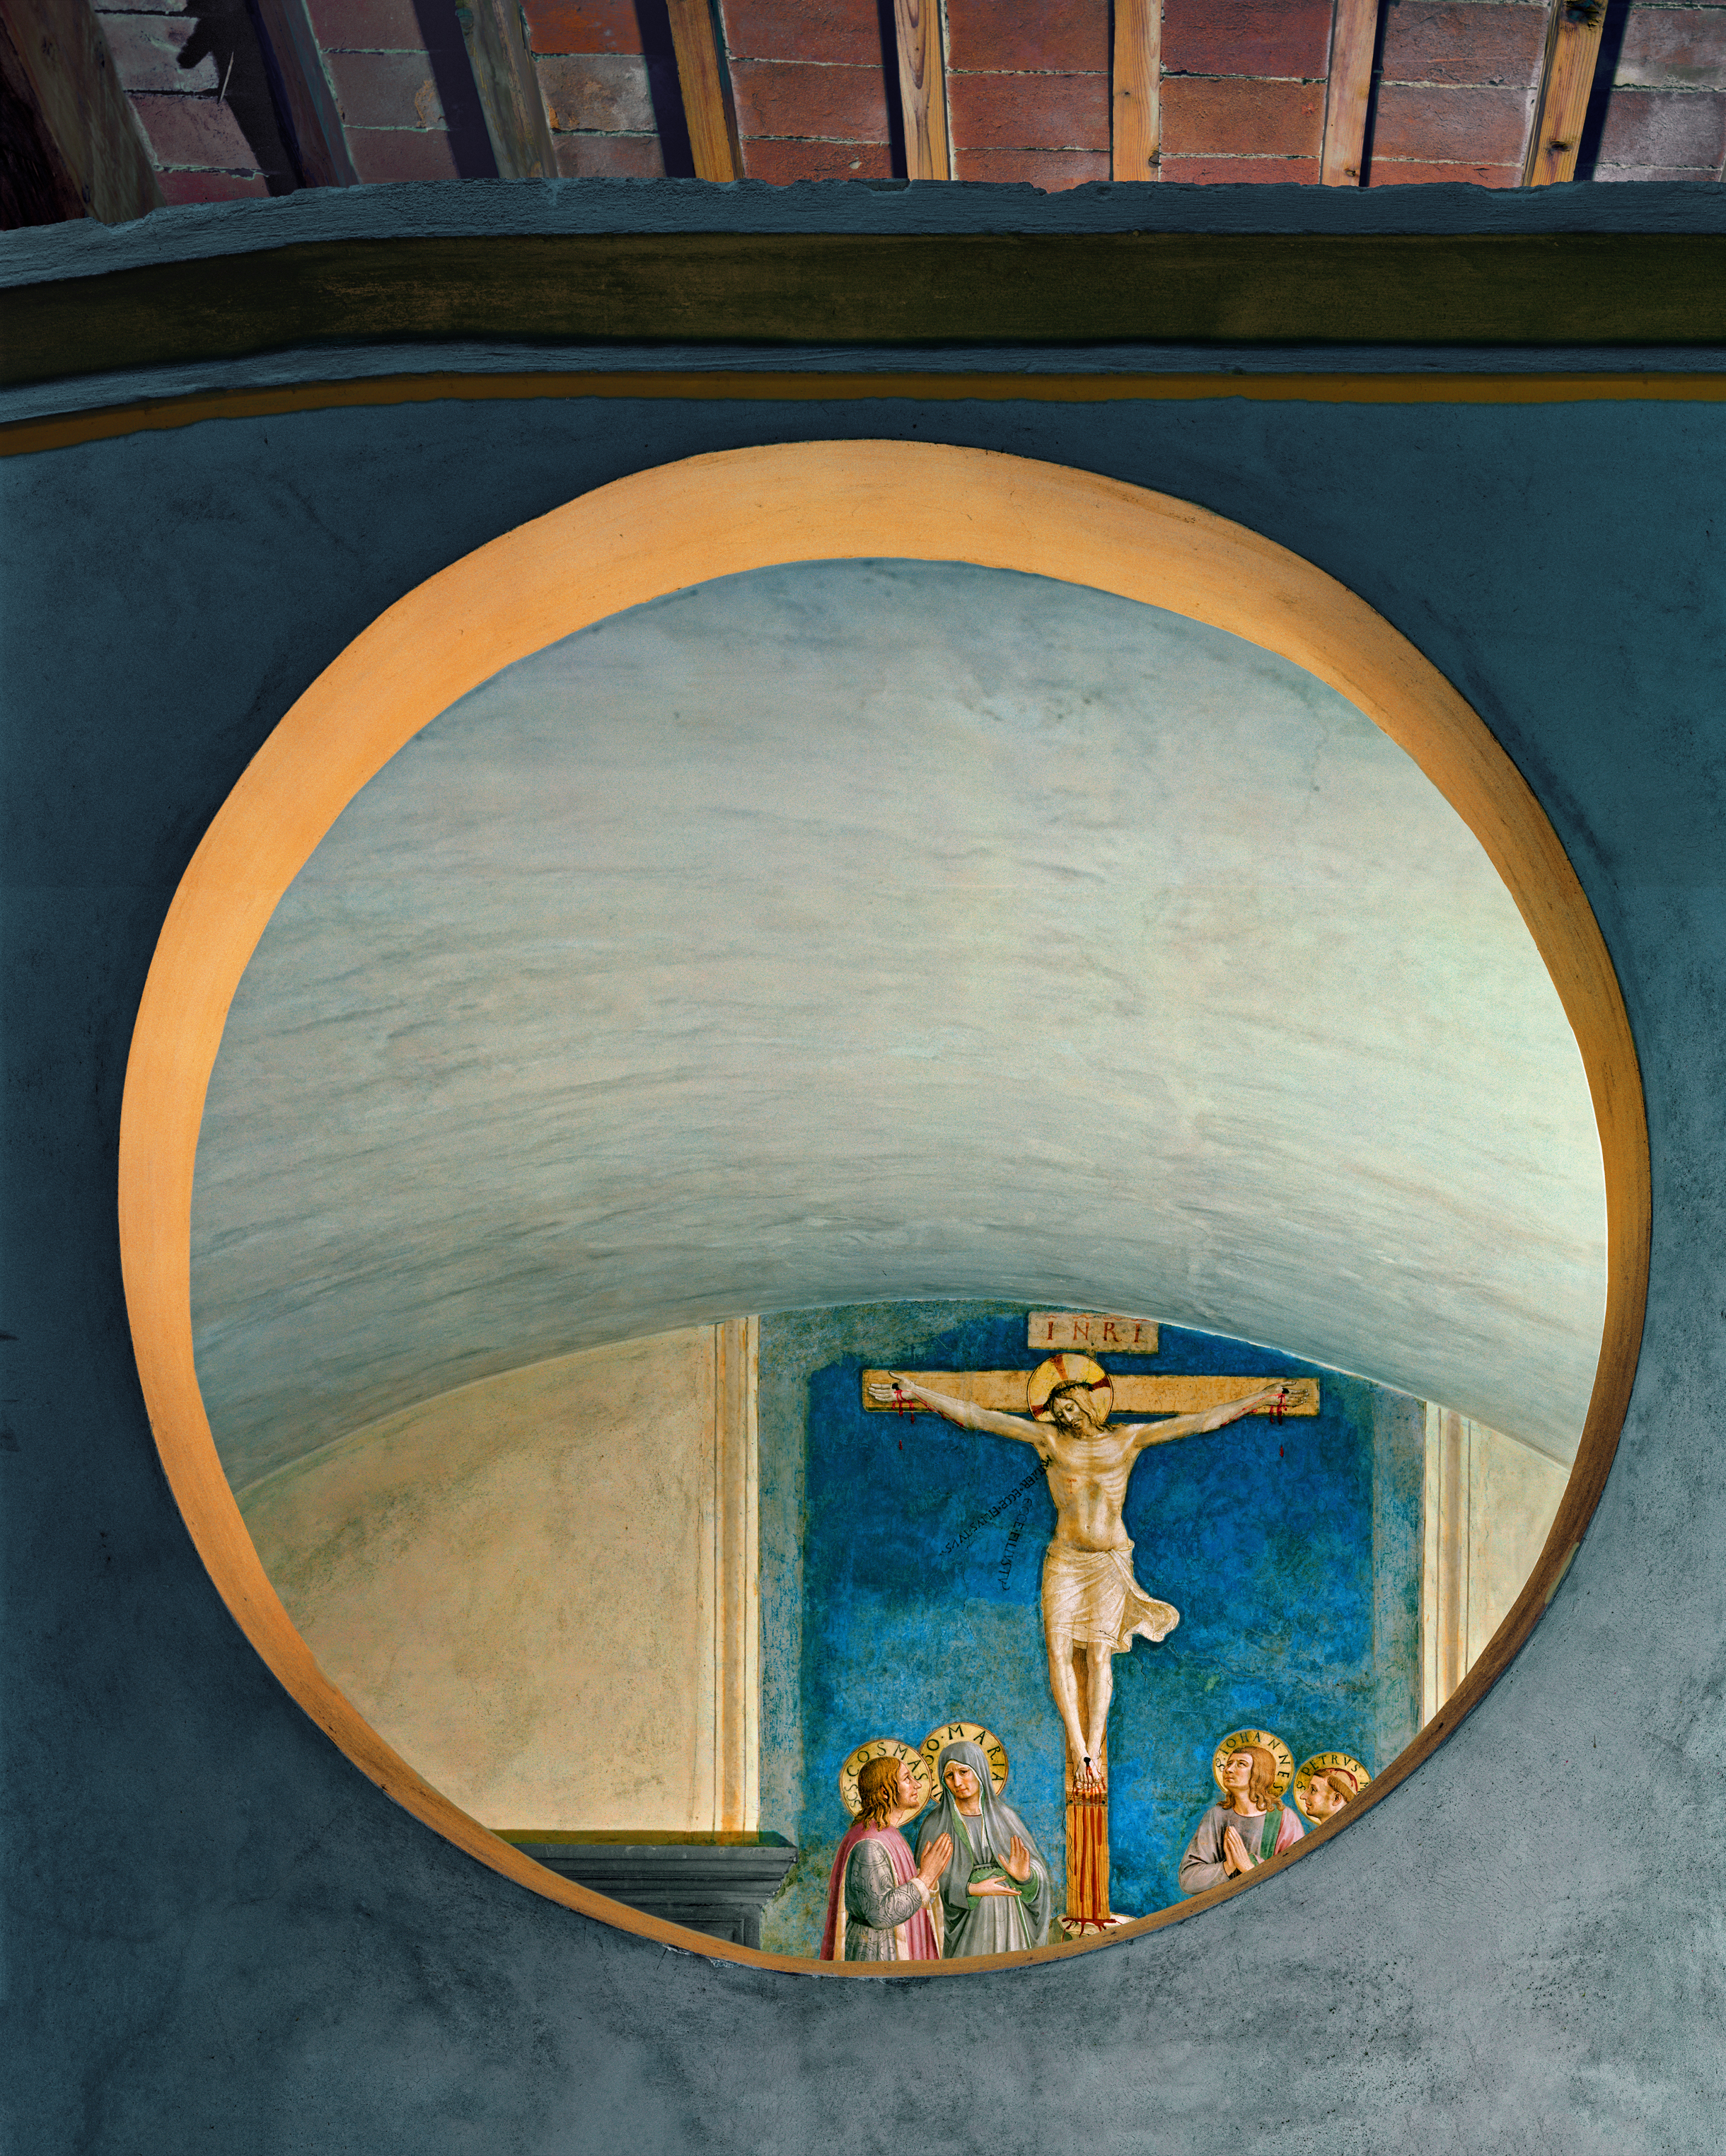 Crucifixion with the Virgin and Saints by Fra Angelico #1, San Marco Convent, Florence, Italy, 2010 © Robert Polidori, Courtesy of Paul Kasmin Gallery